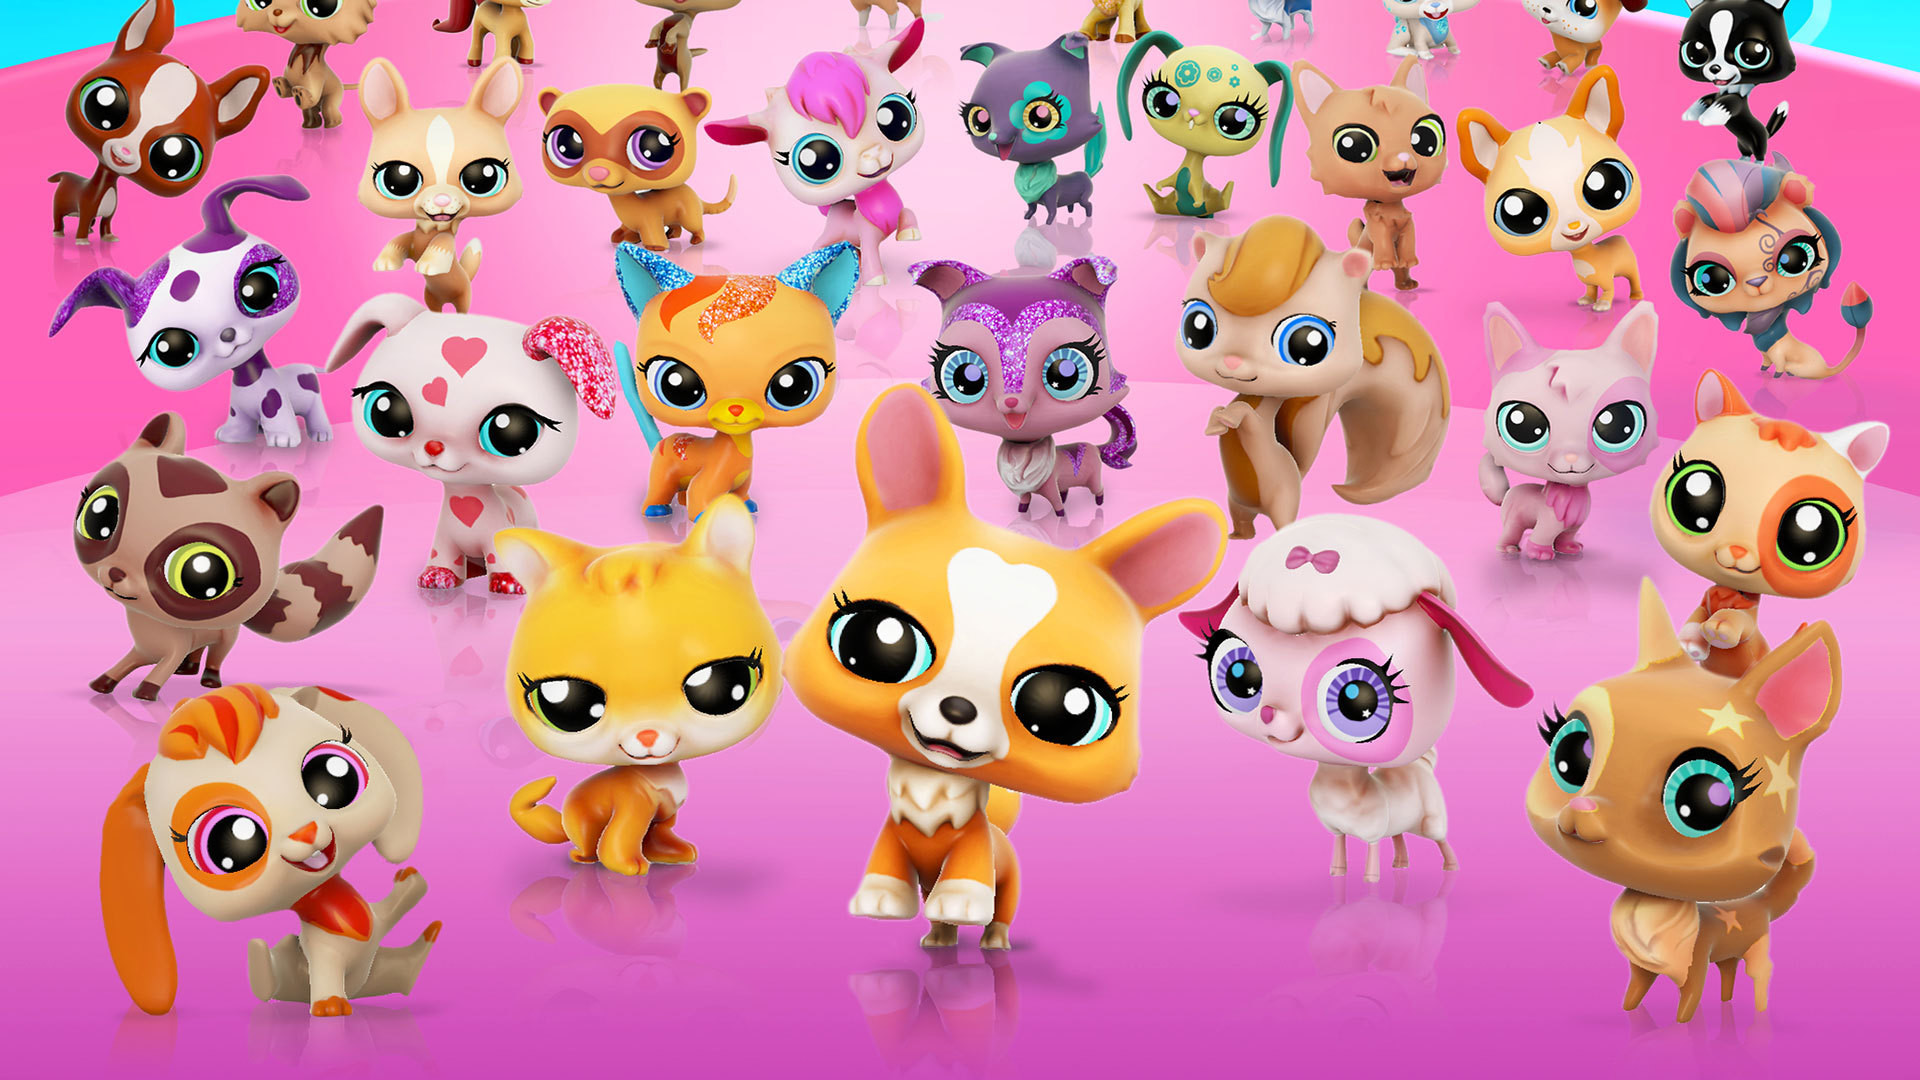 Lps Wallpapers 67 images 1920x1080